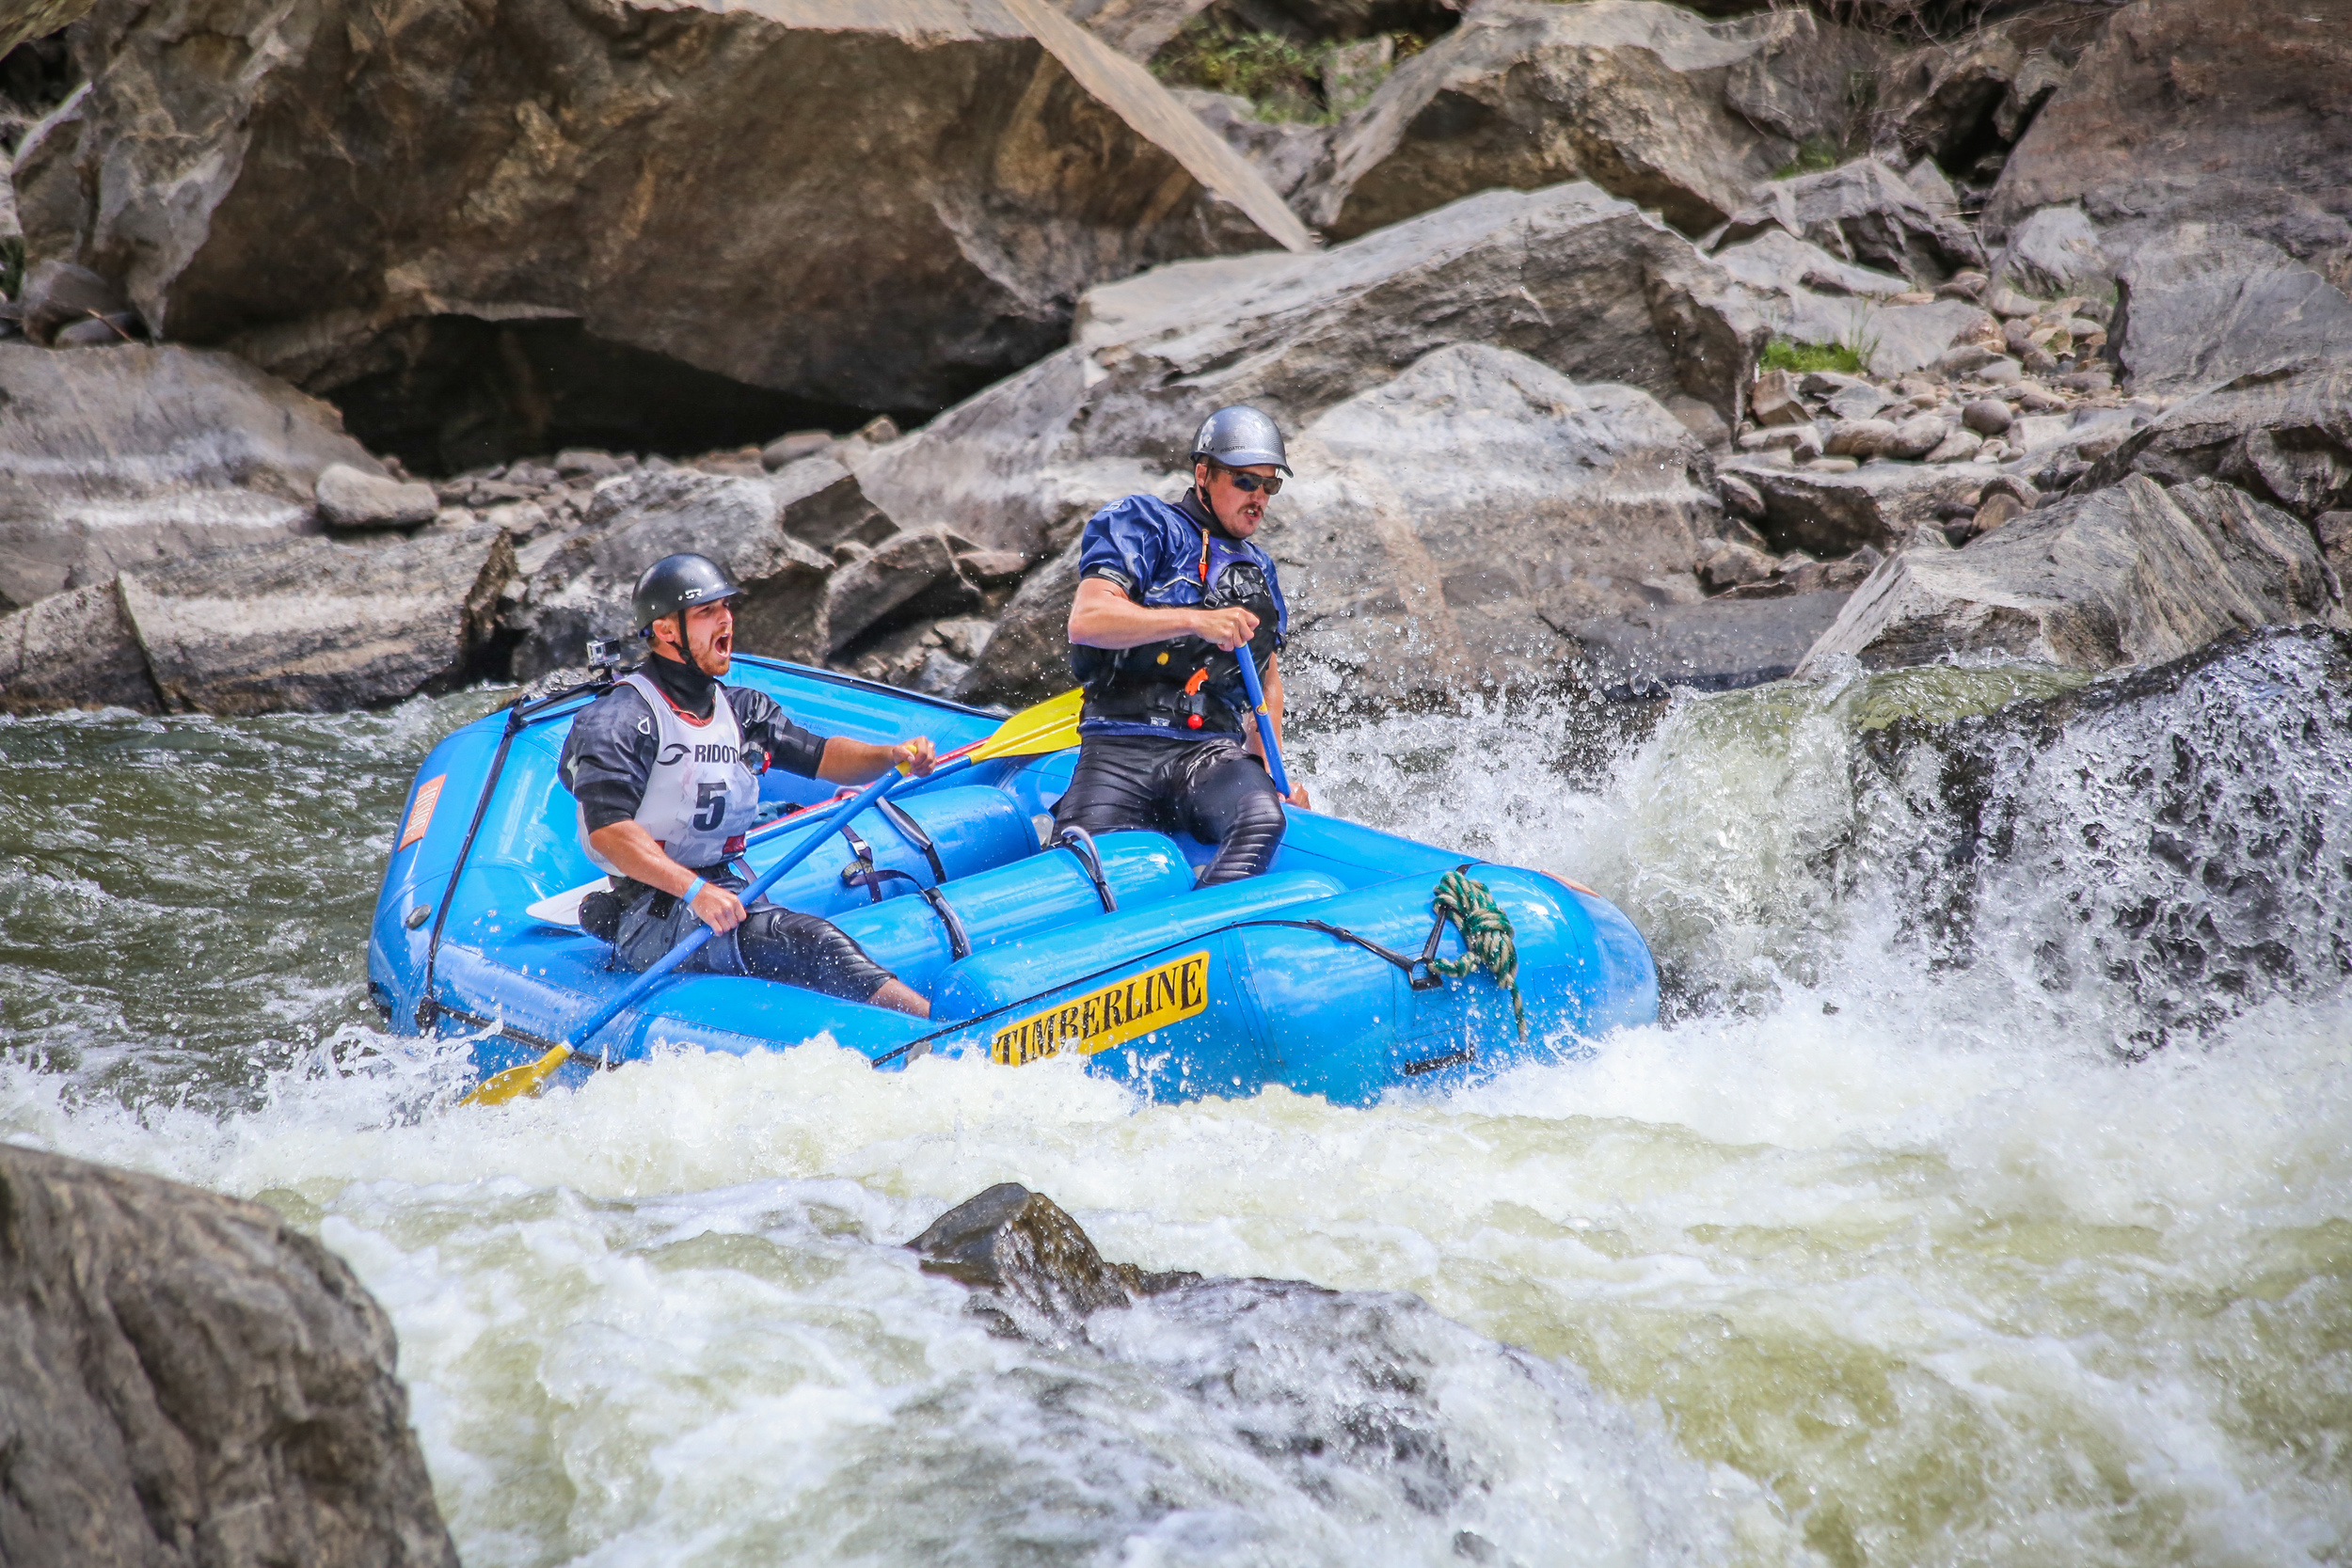 This is Shawn and Christian about to huck a 12-foot waterfall rapid called Tunnel Falls. (I was lucky enough to get taken into a the canyon by a railroad truck to photograph this spot for the race.)